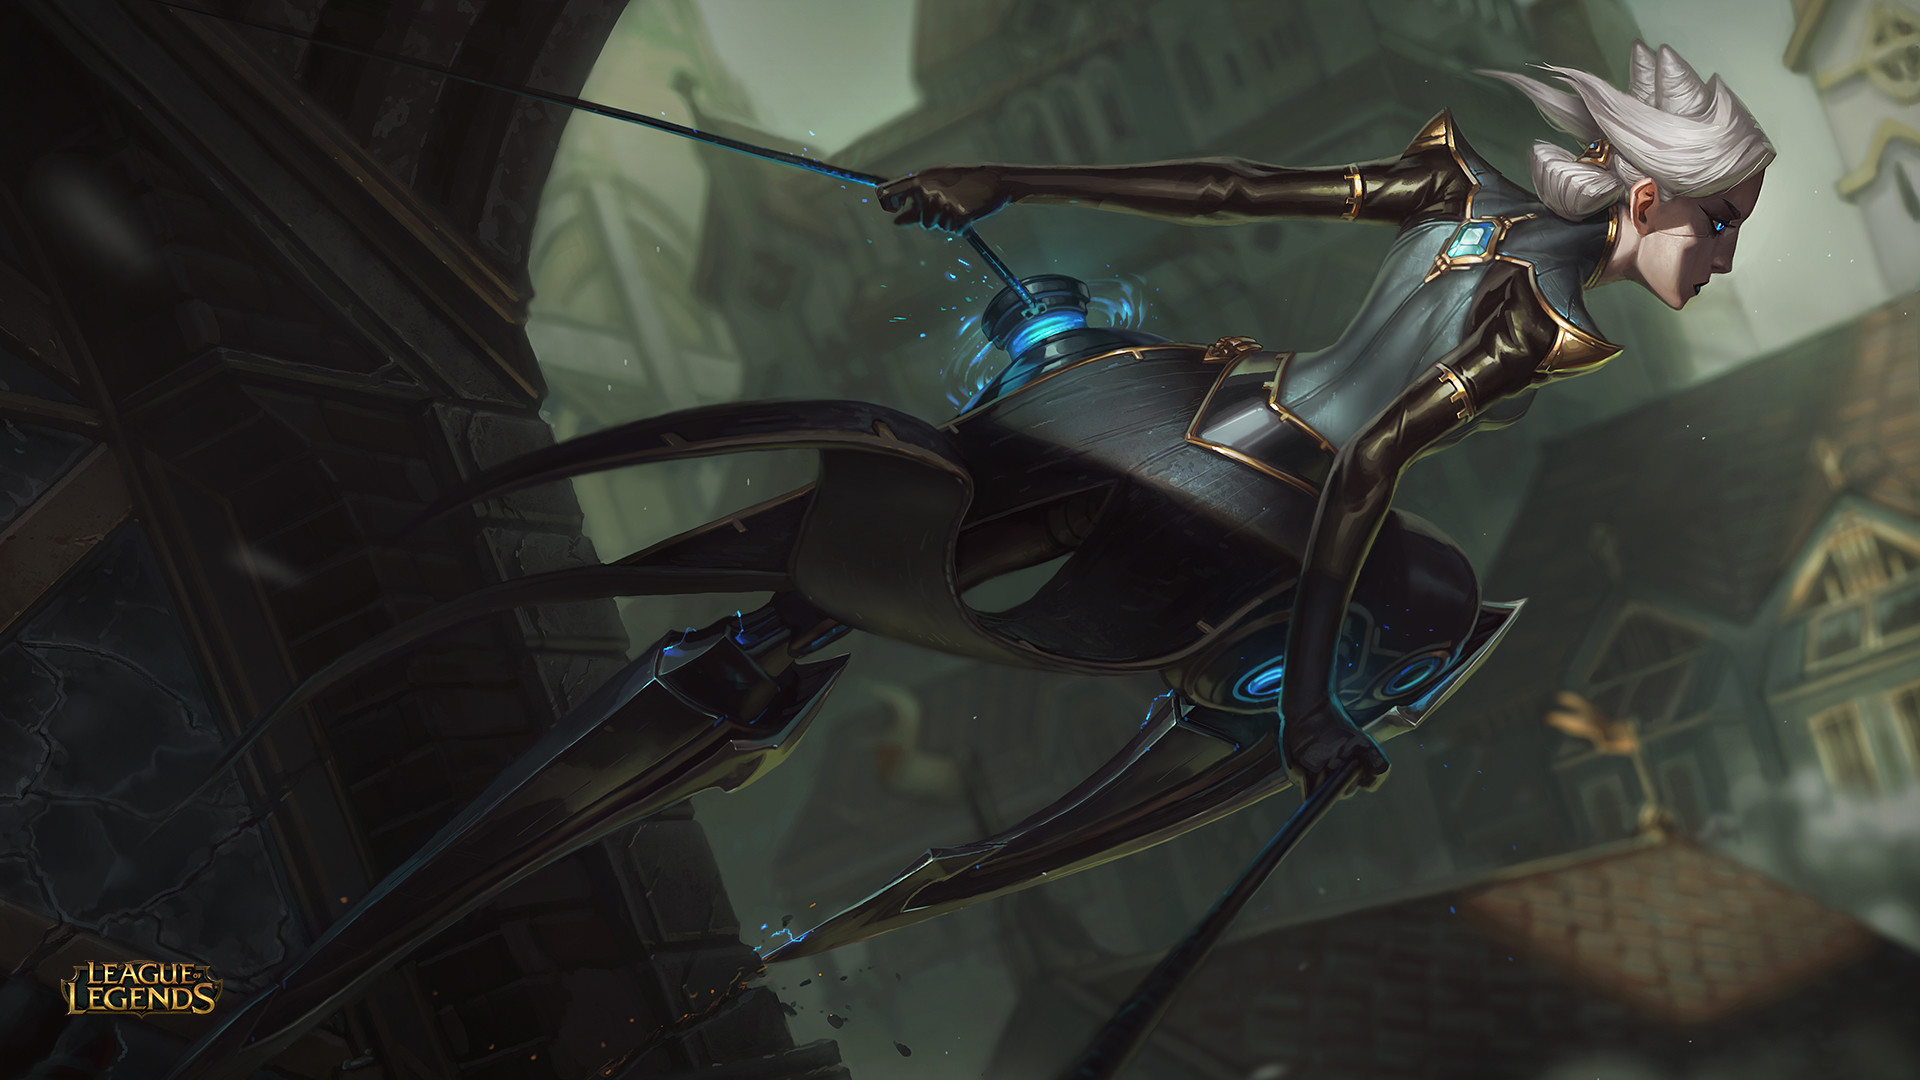 3 Camille (League Of Legends) HD Wallpapers   Backgrounds – Wallpaper Abyss